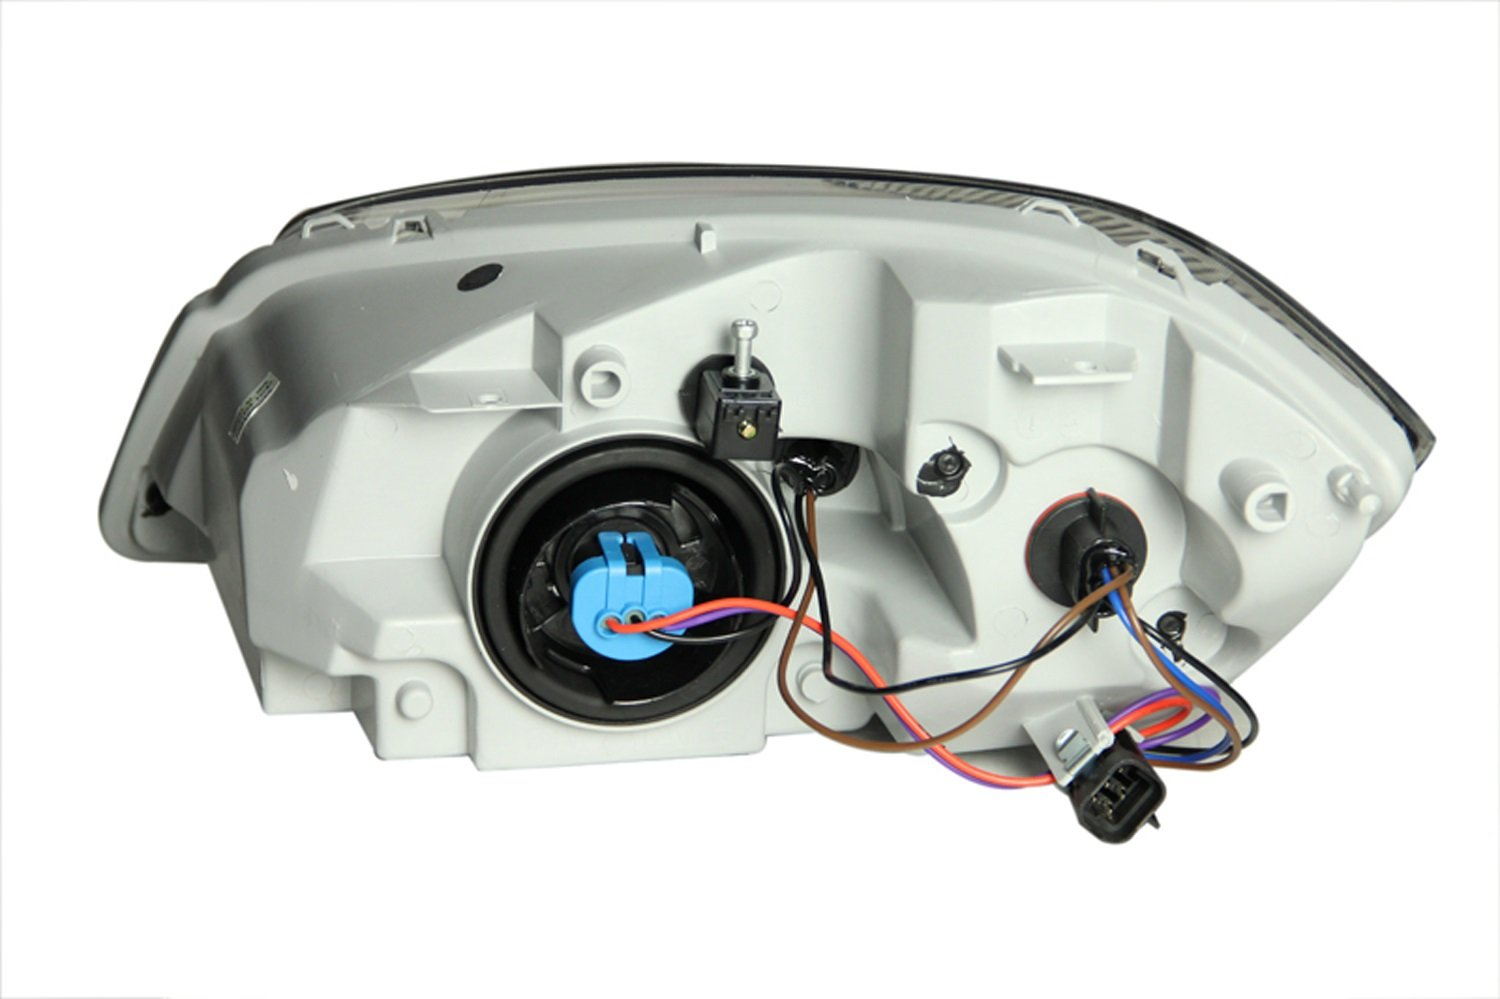 61GSljqJIyL._SL1500_ amazon com anzo usa 121154 chevrolet cobalt black headlight 05 chevy cobalt wiring diagram at gsmx.co